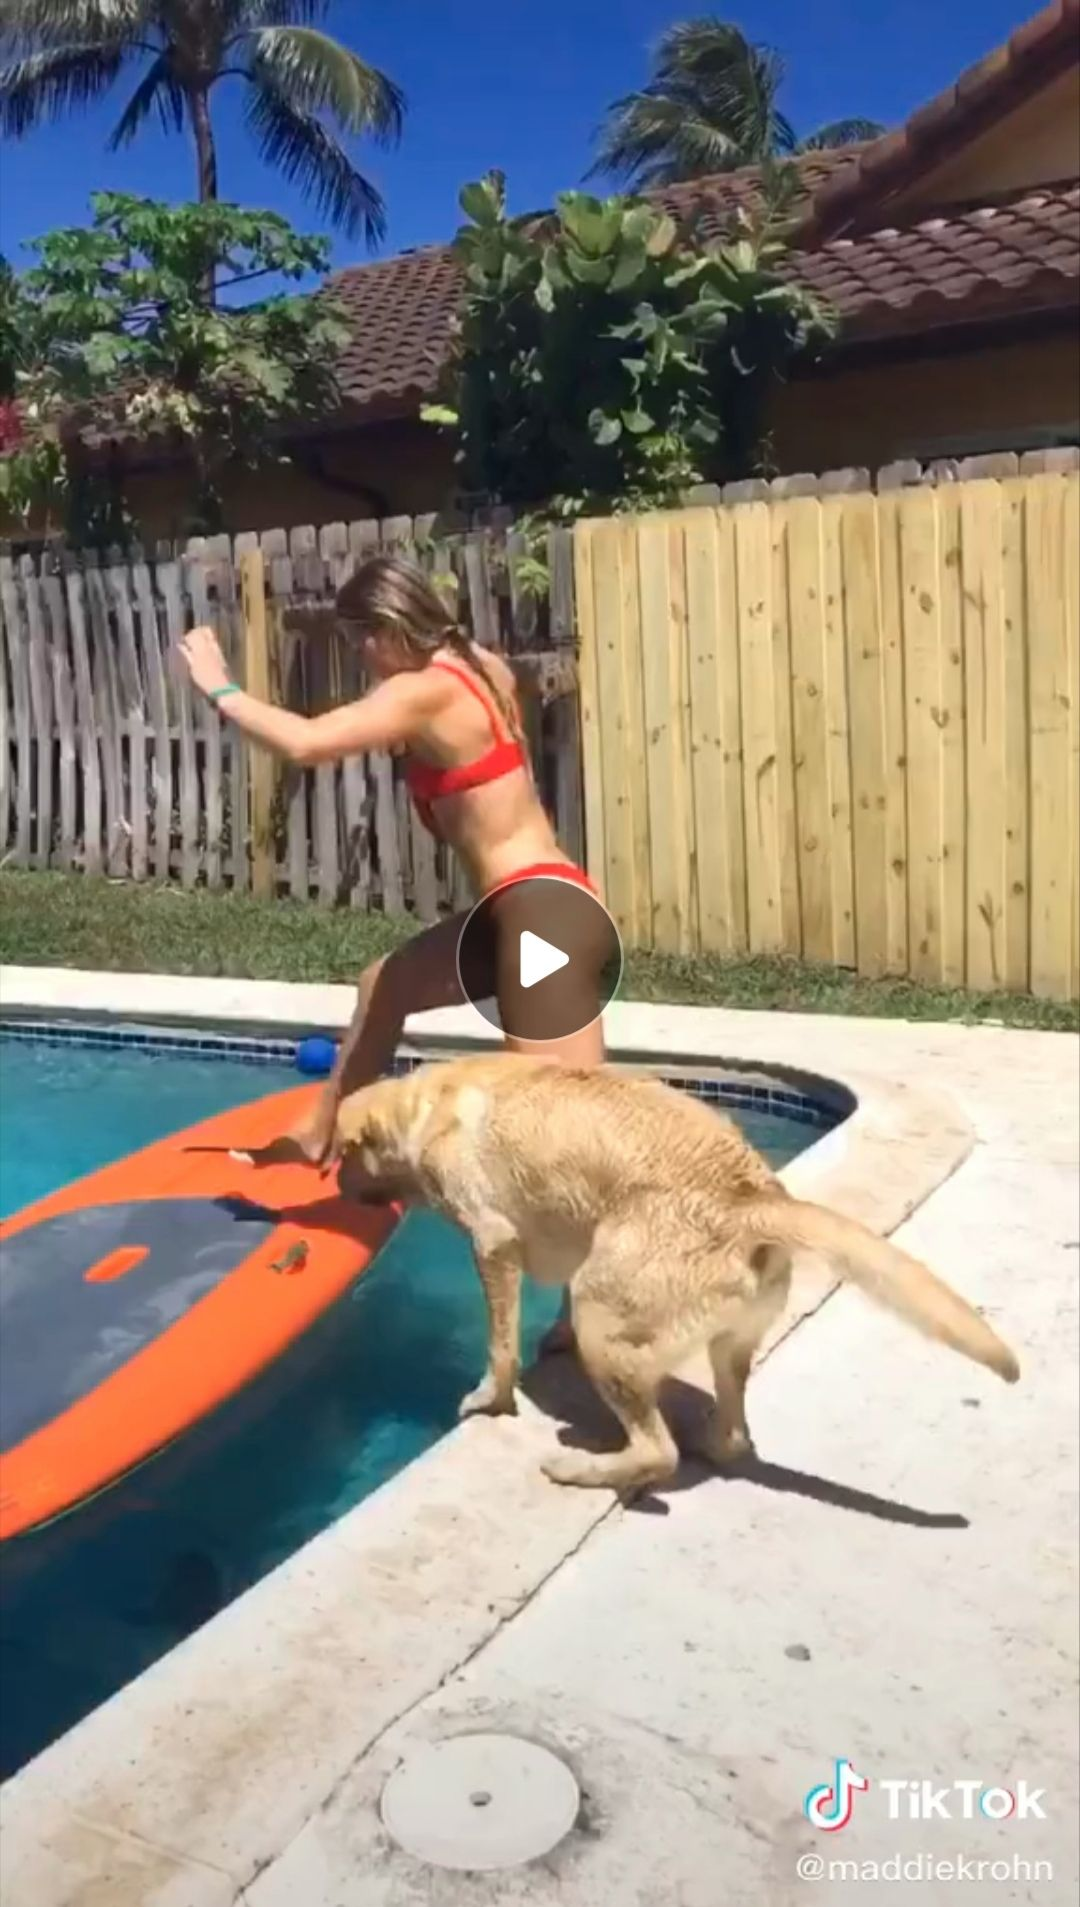 The Cutest Tik Tok Dogs Ever Cute Dogs Funny Memes Funny Animal Videos